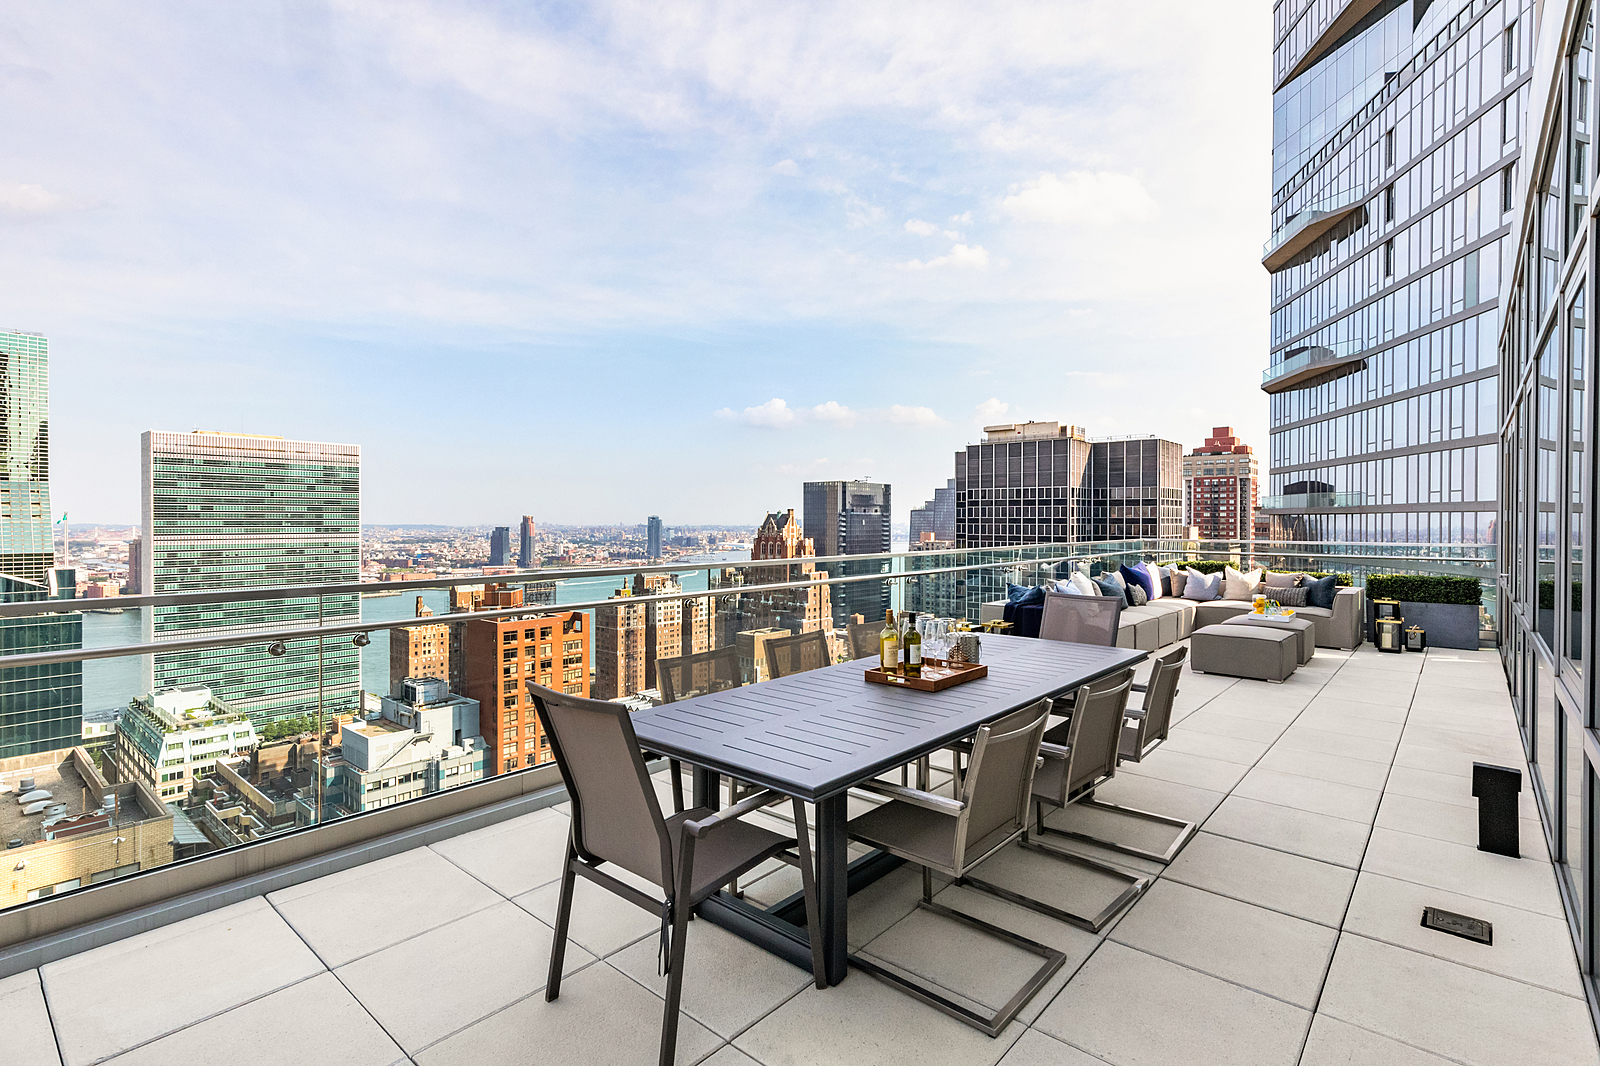 219East44thStreetPH-MidtownNewYork_Aaron_Ross_DouglasElliman_Photography_83045234_high_res